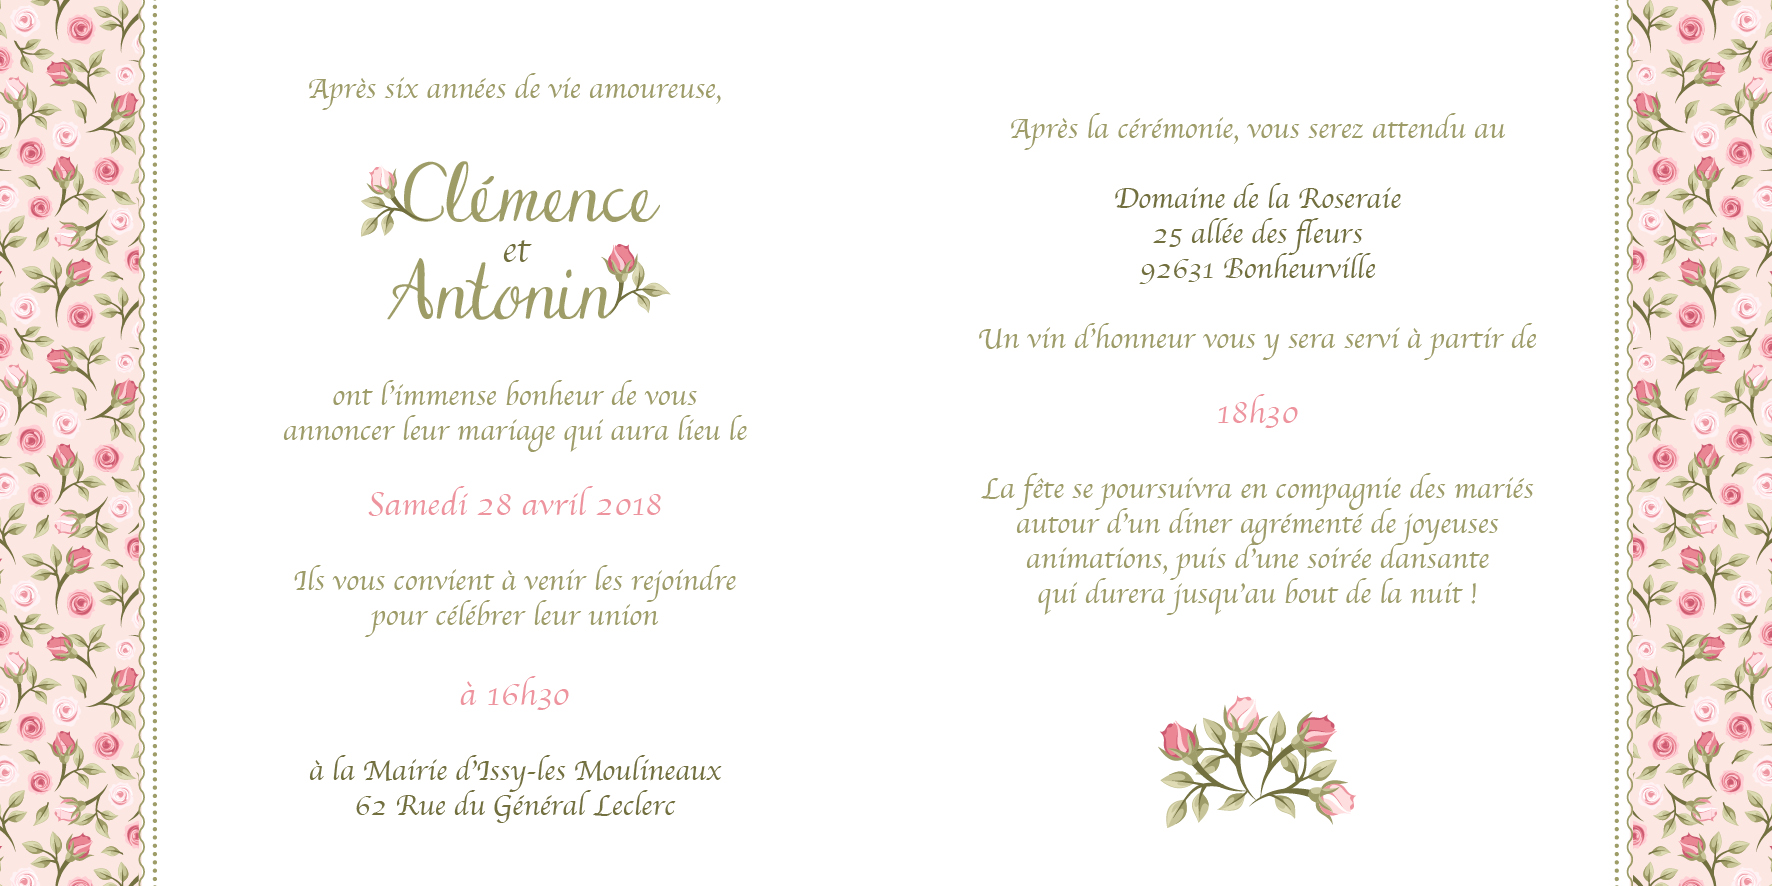 FP mariage - Les roses anciennes -Rose- page 2-3